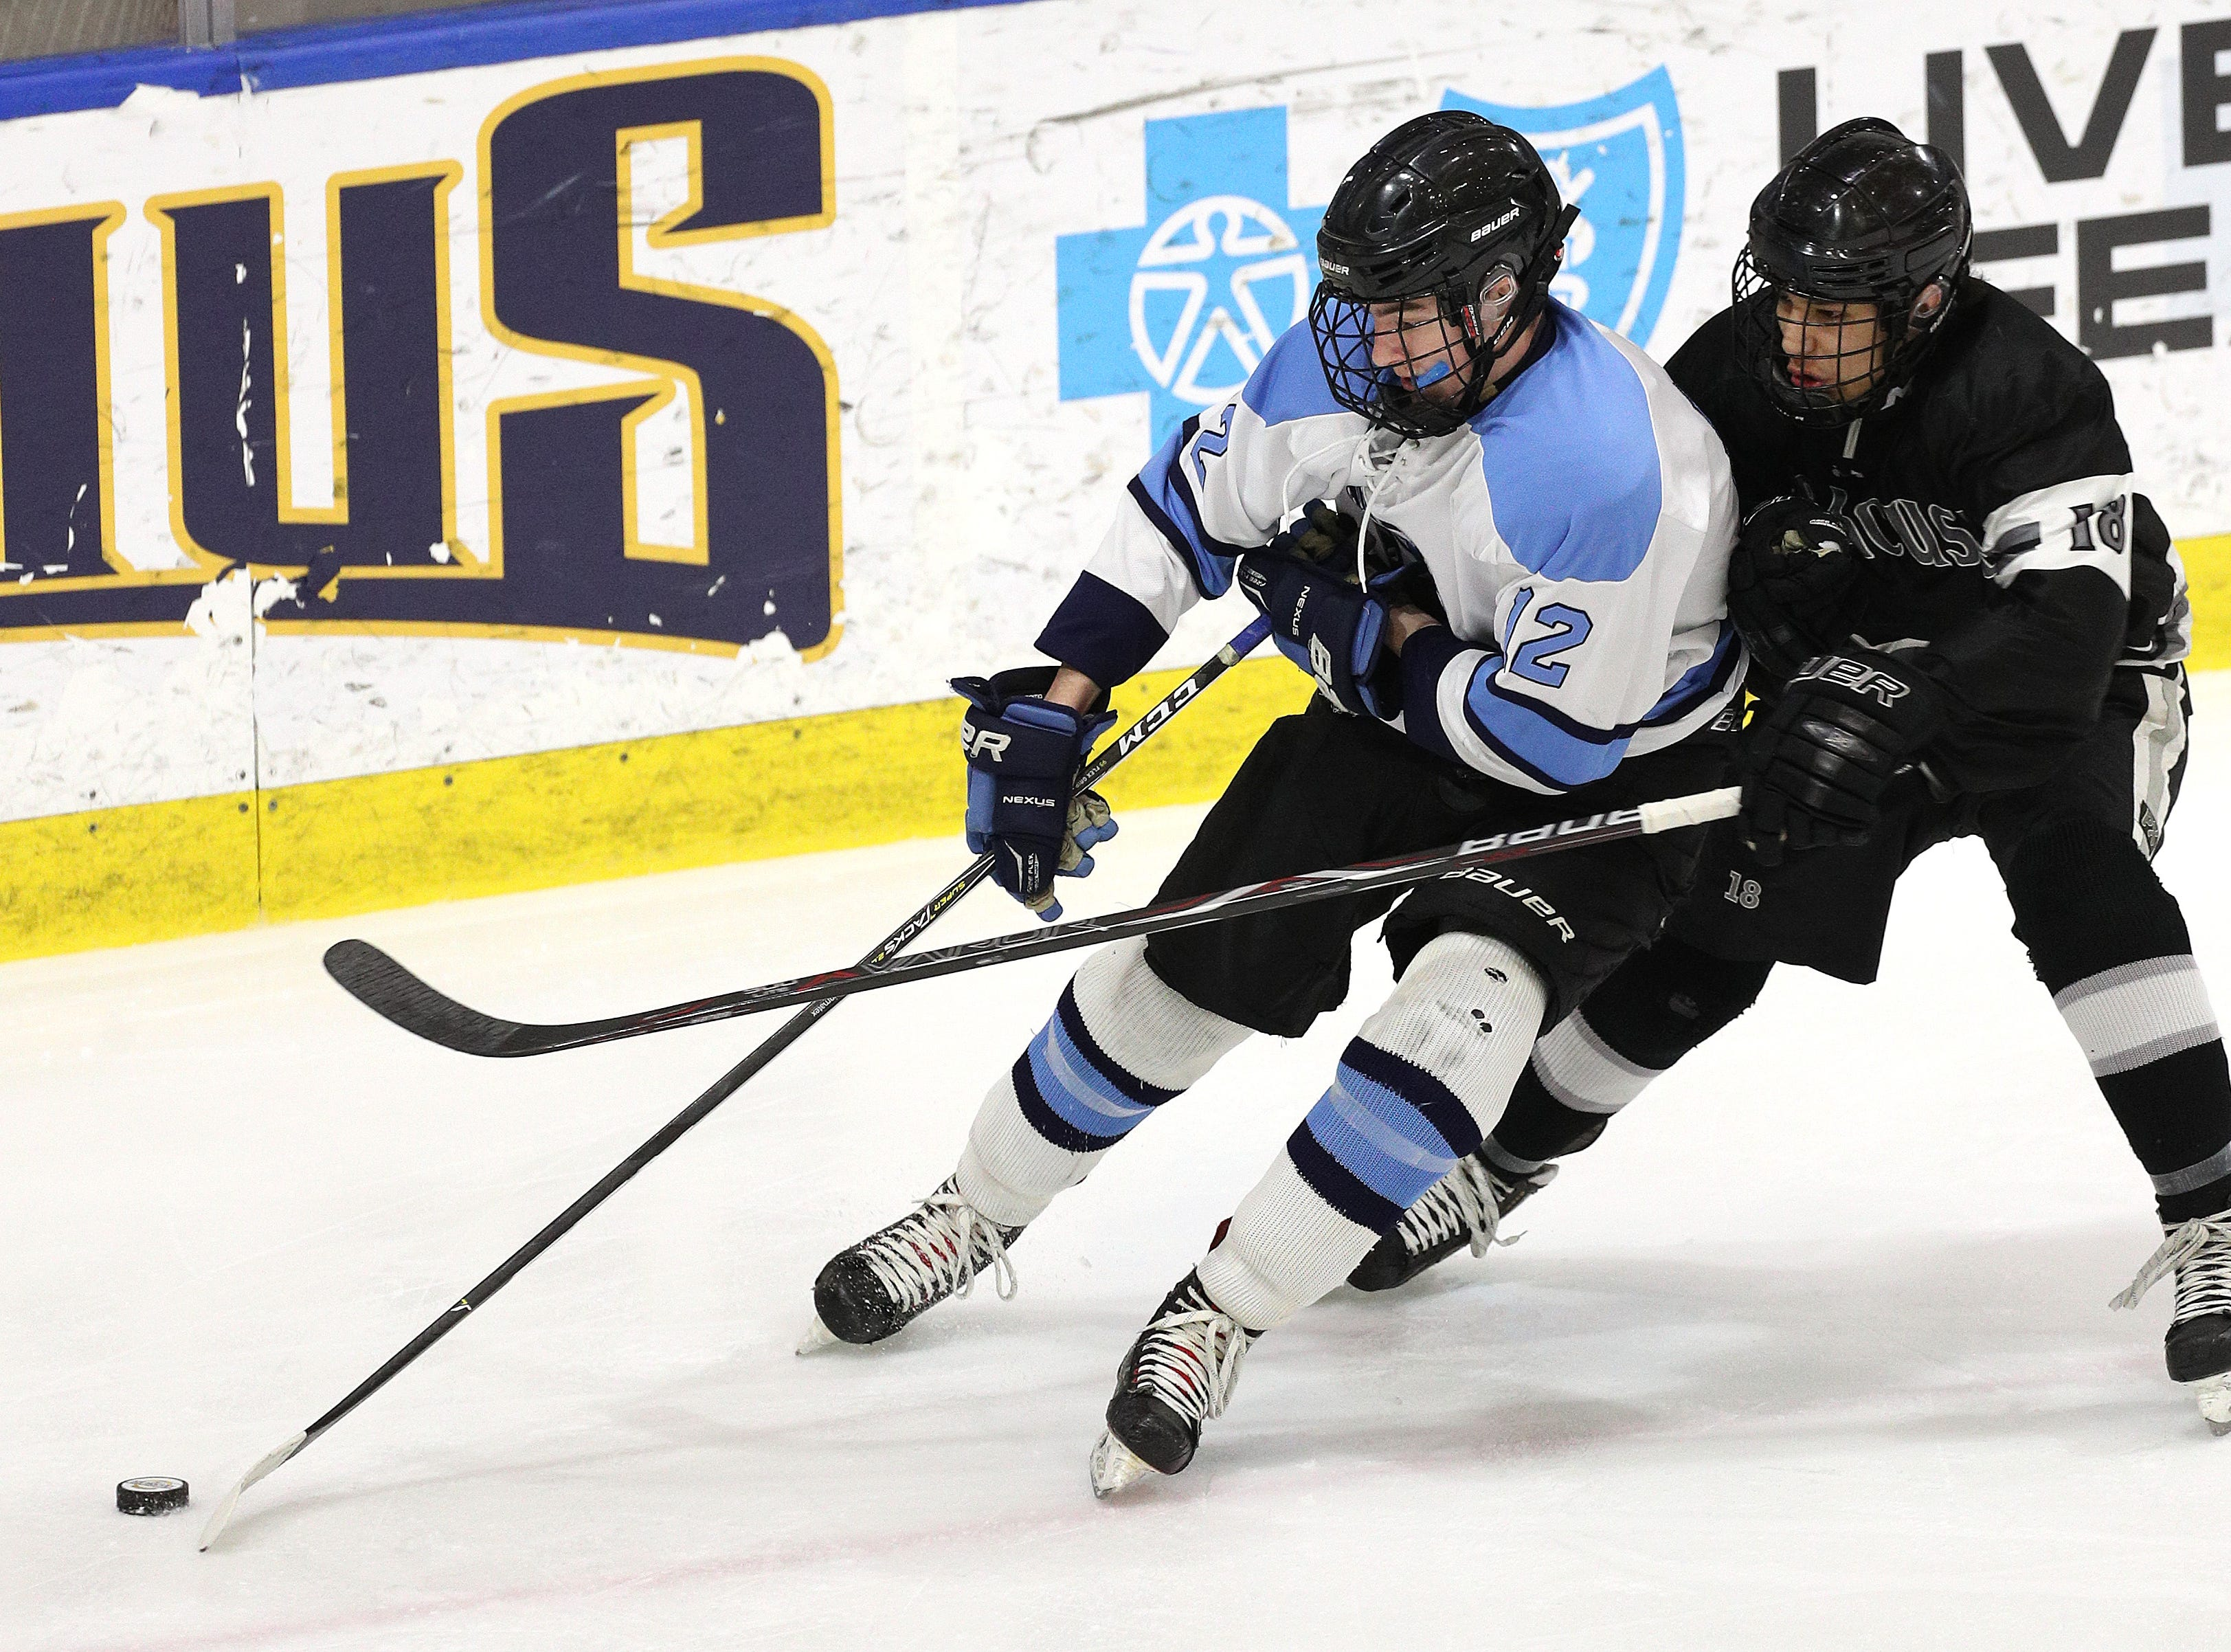 Suffern's Chris Olsen Carries the puck out of his own end and is pressured by Syracuse's Skariwate Papineau.